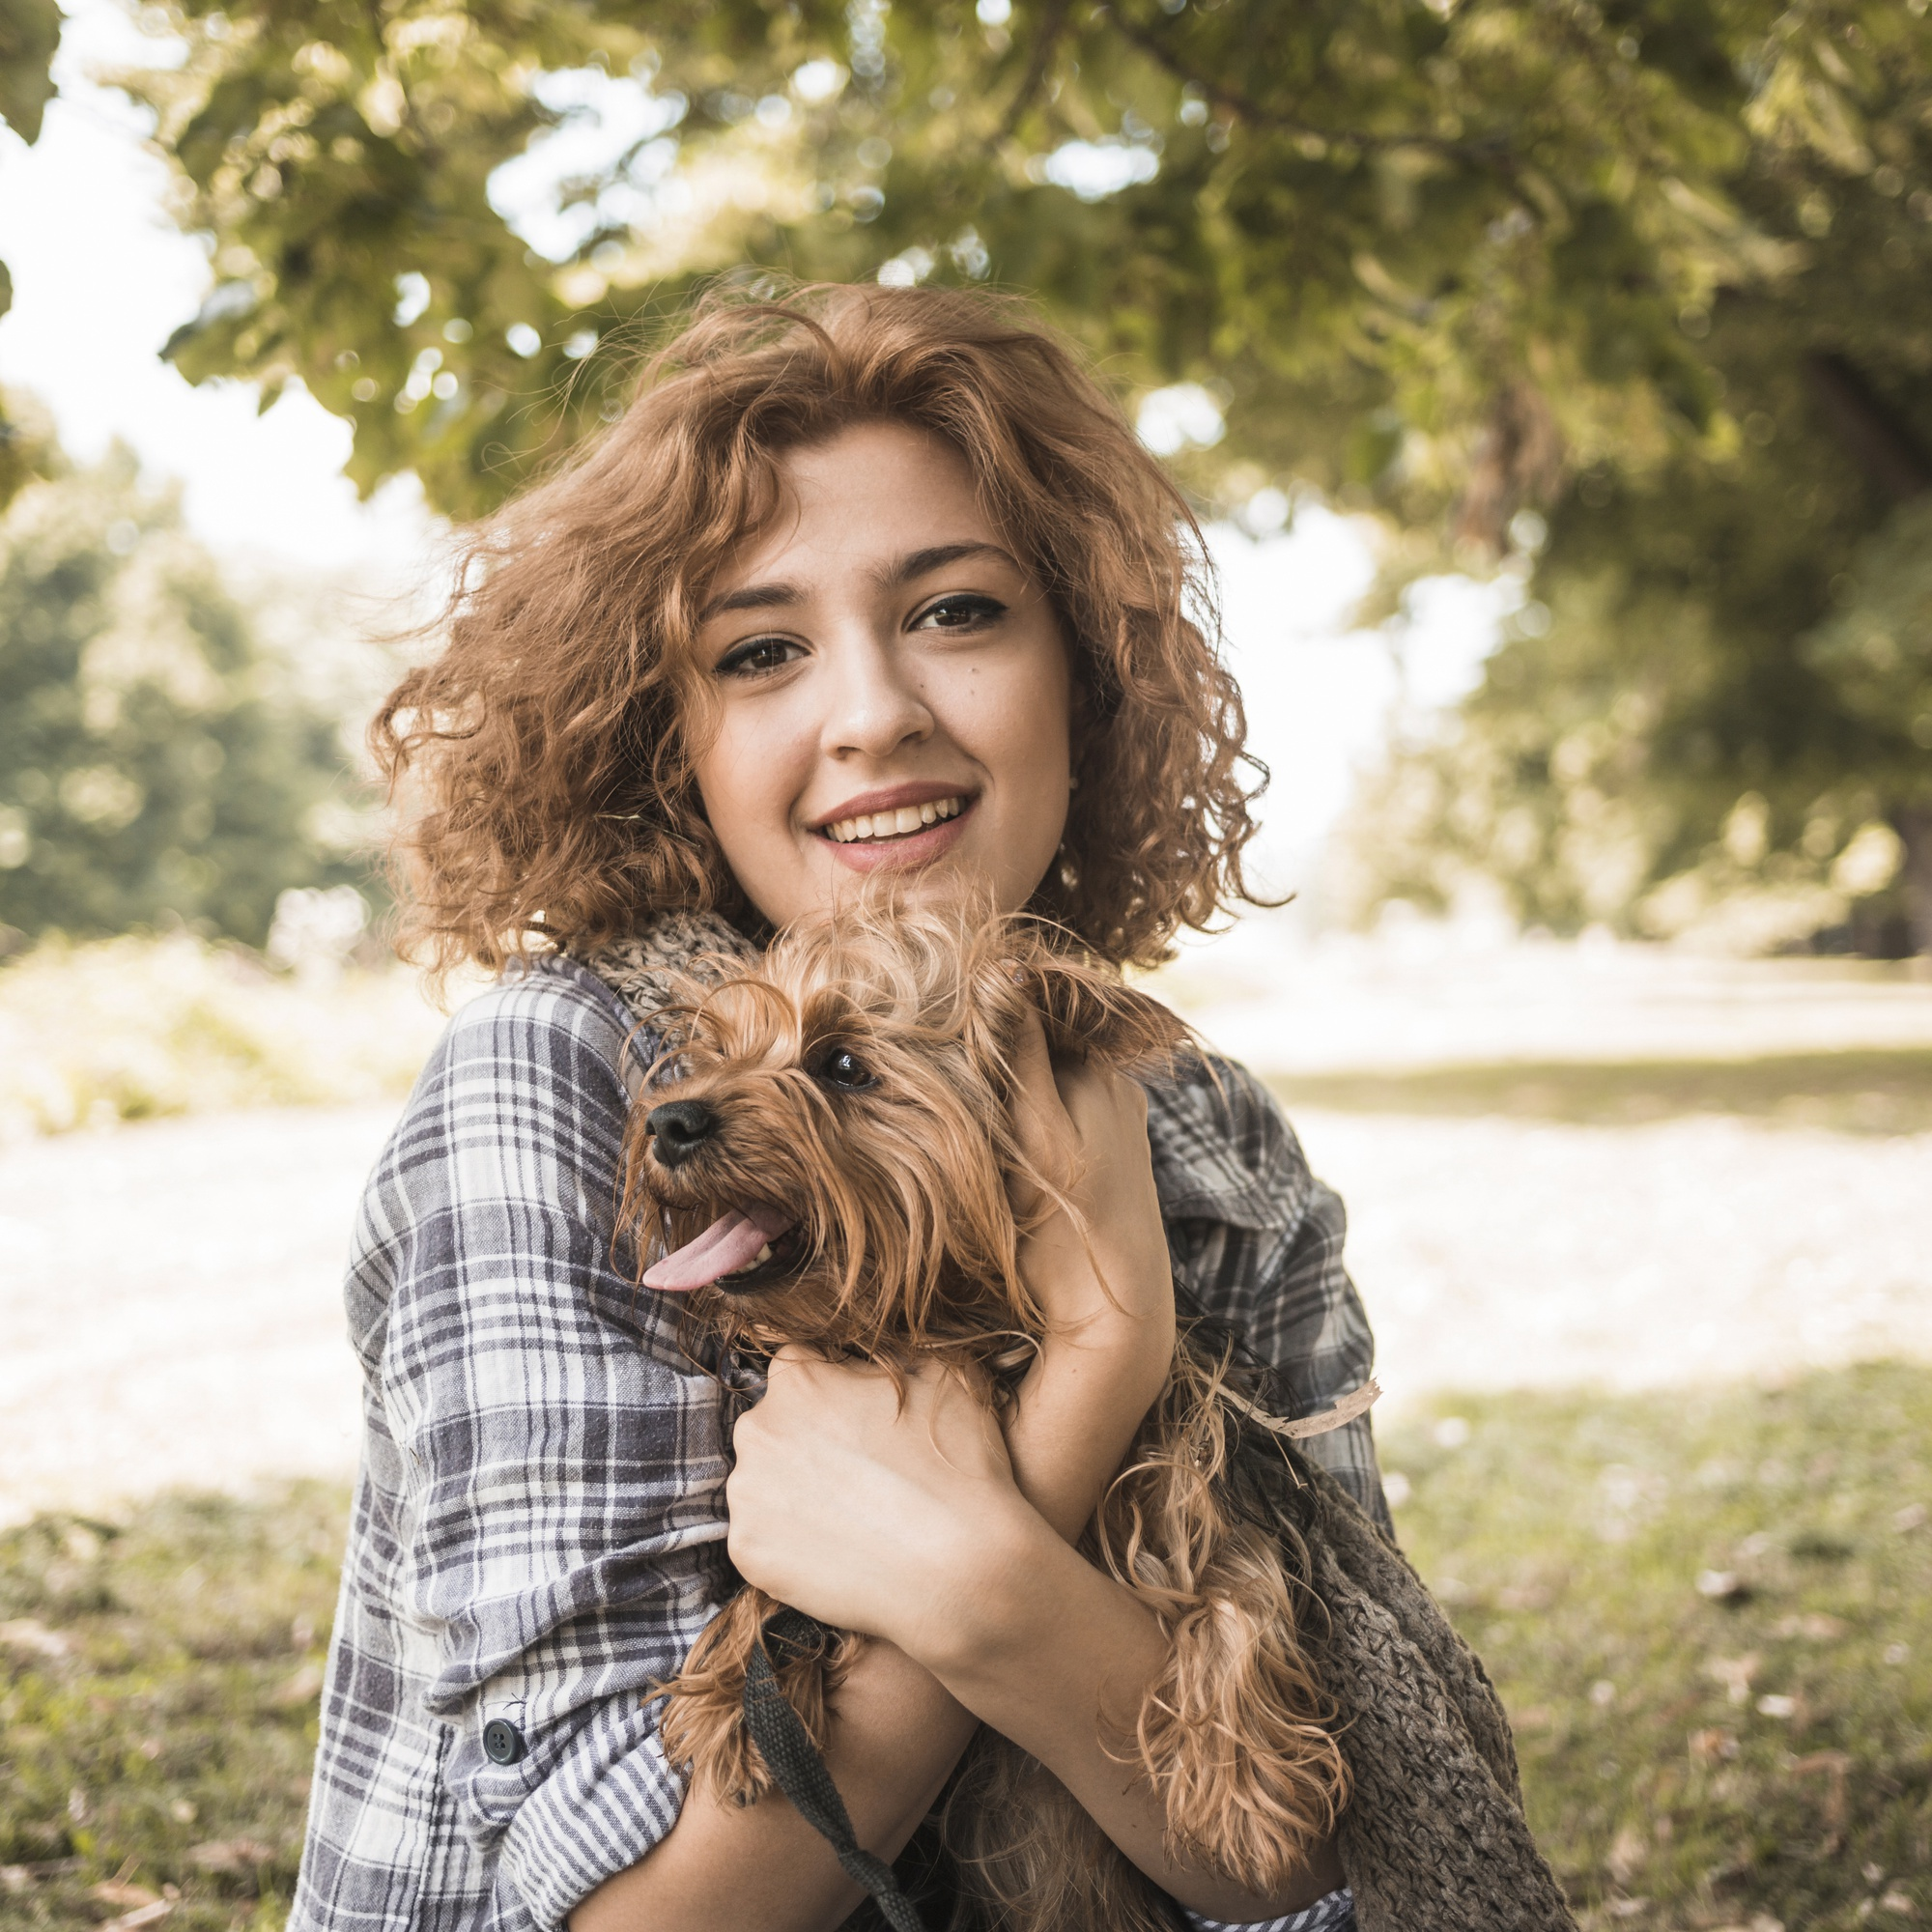 Smiling woman with dog in park